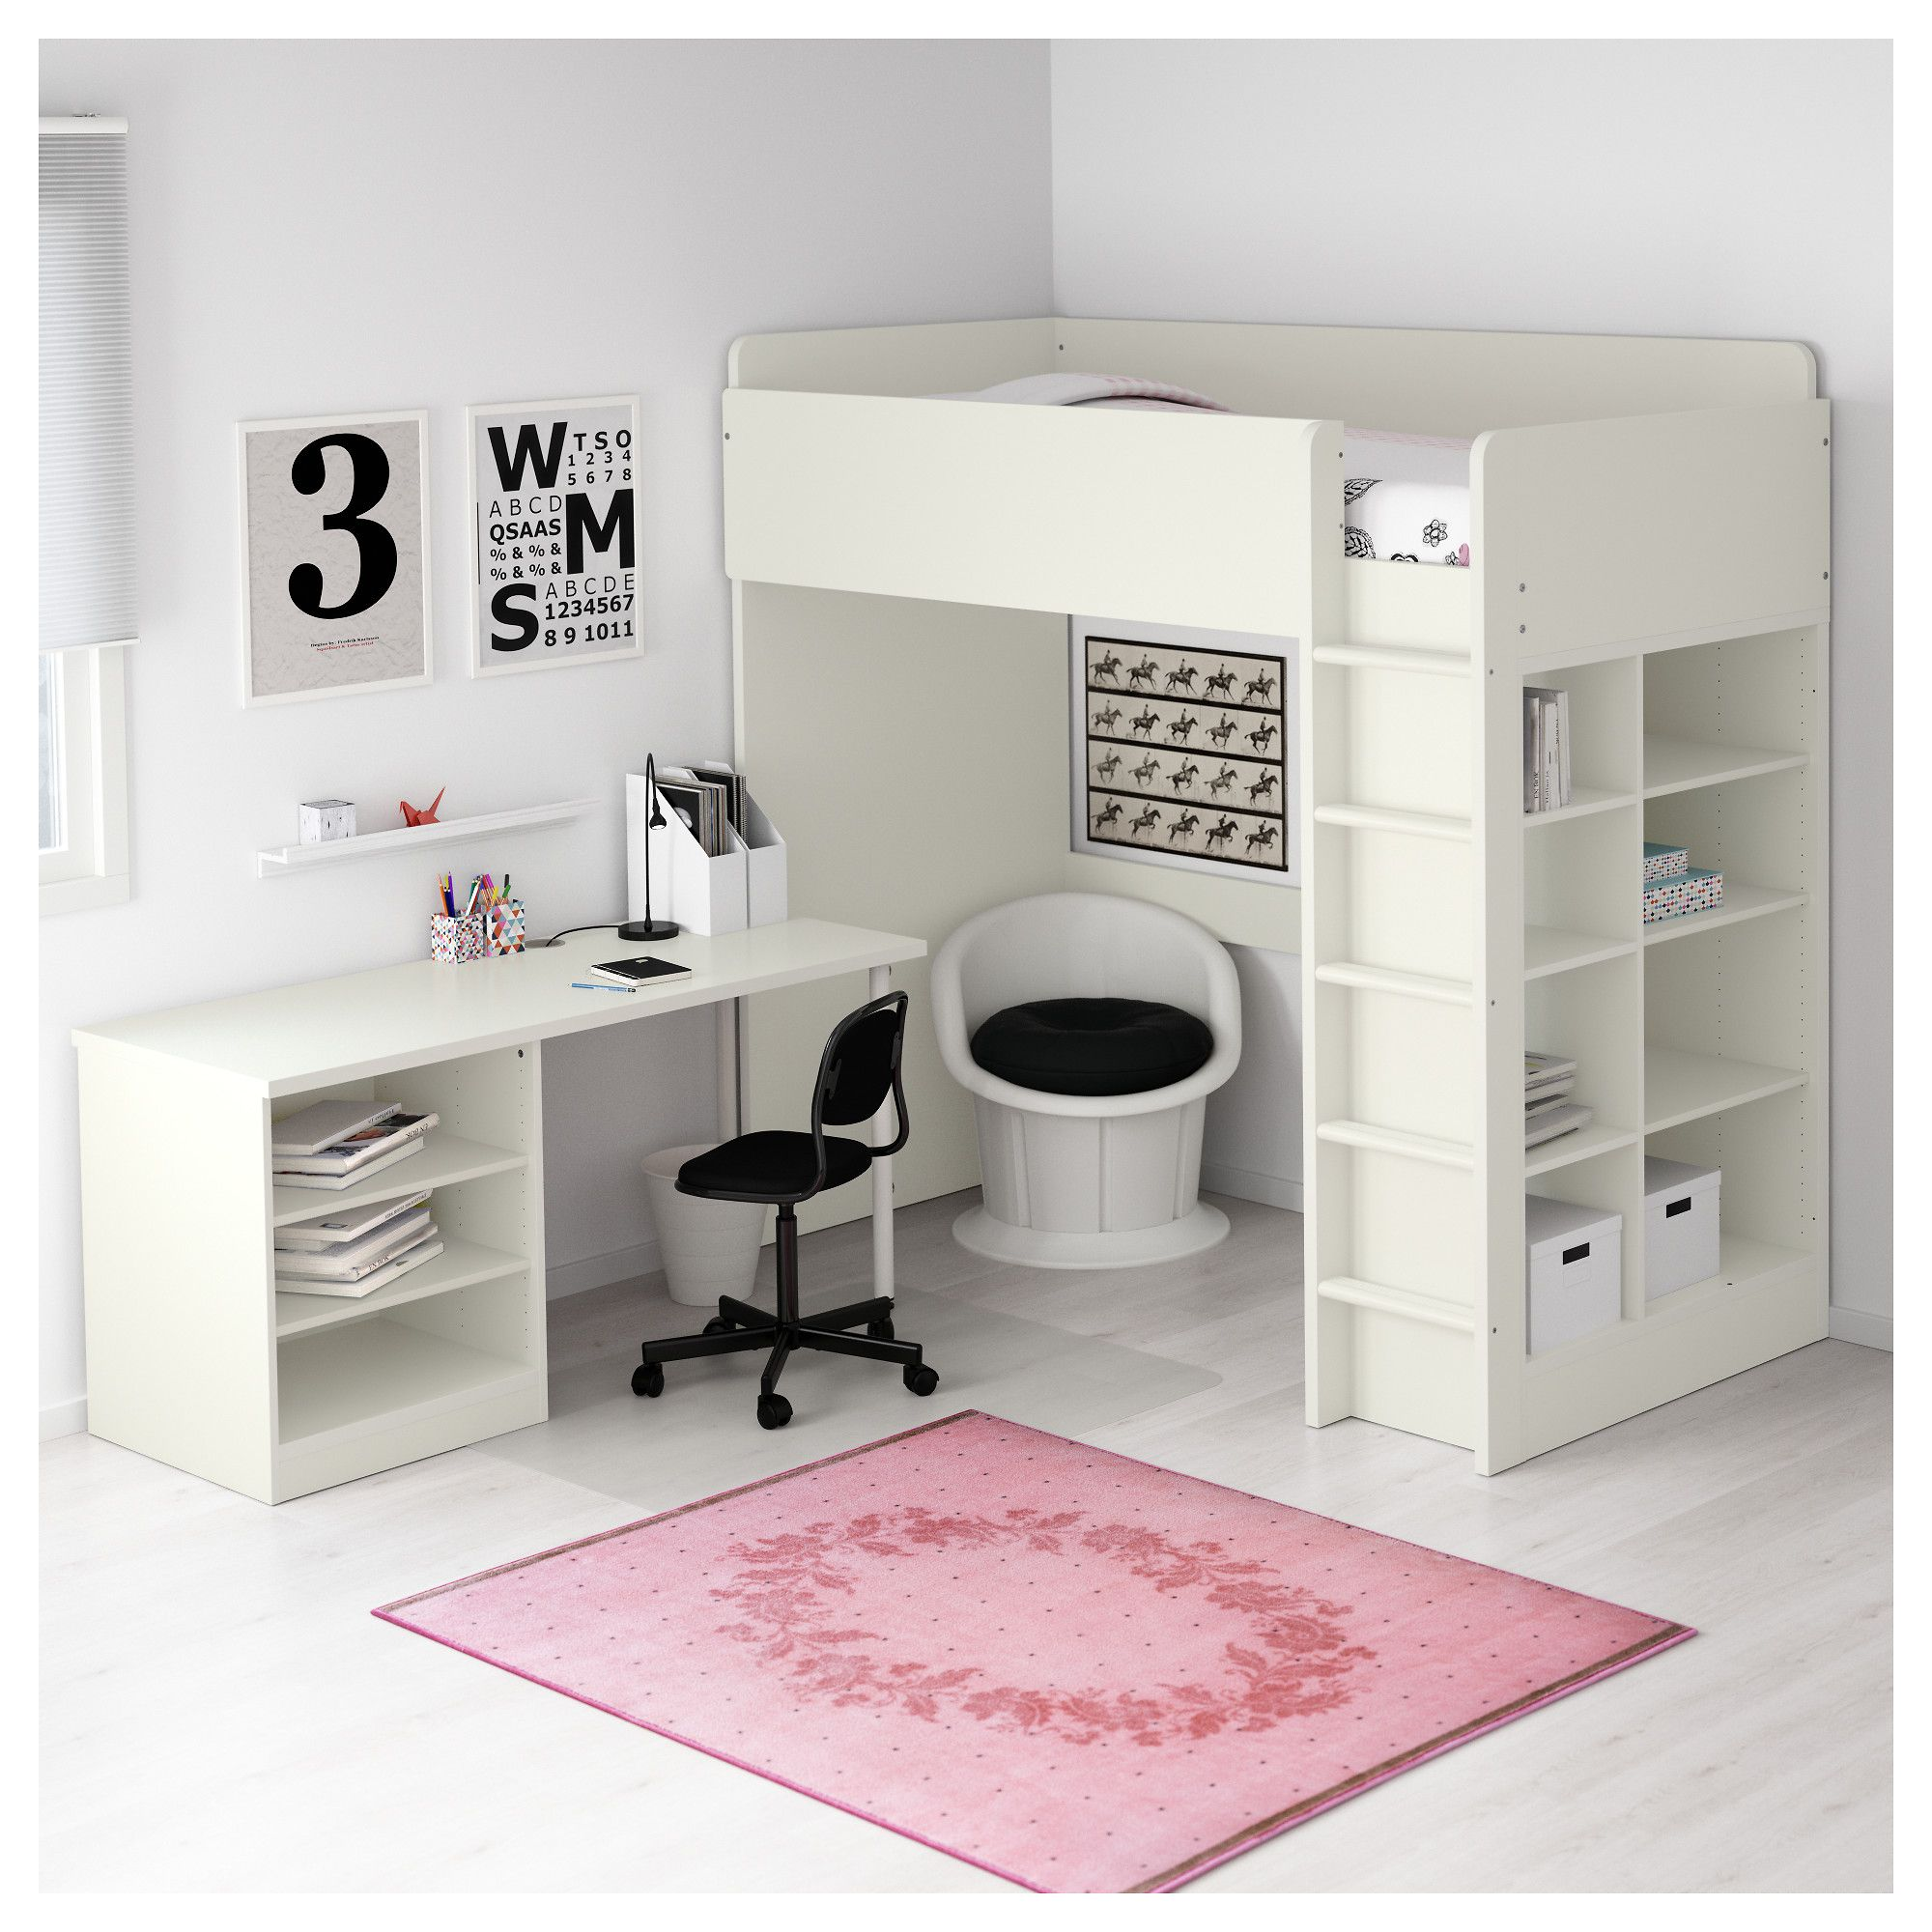 girls bedroom ideas designs cool desk bunk for bed combo sweet